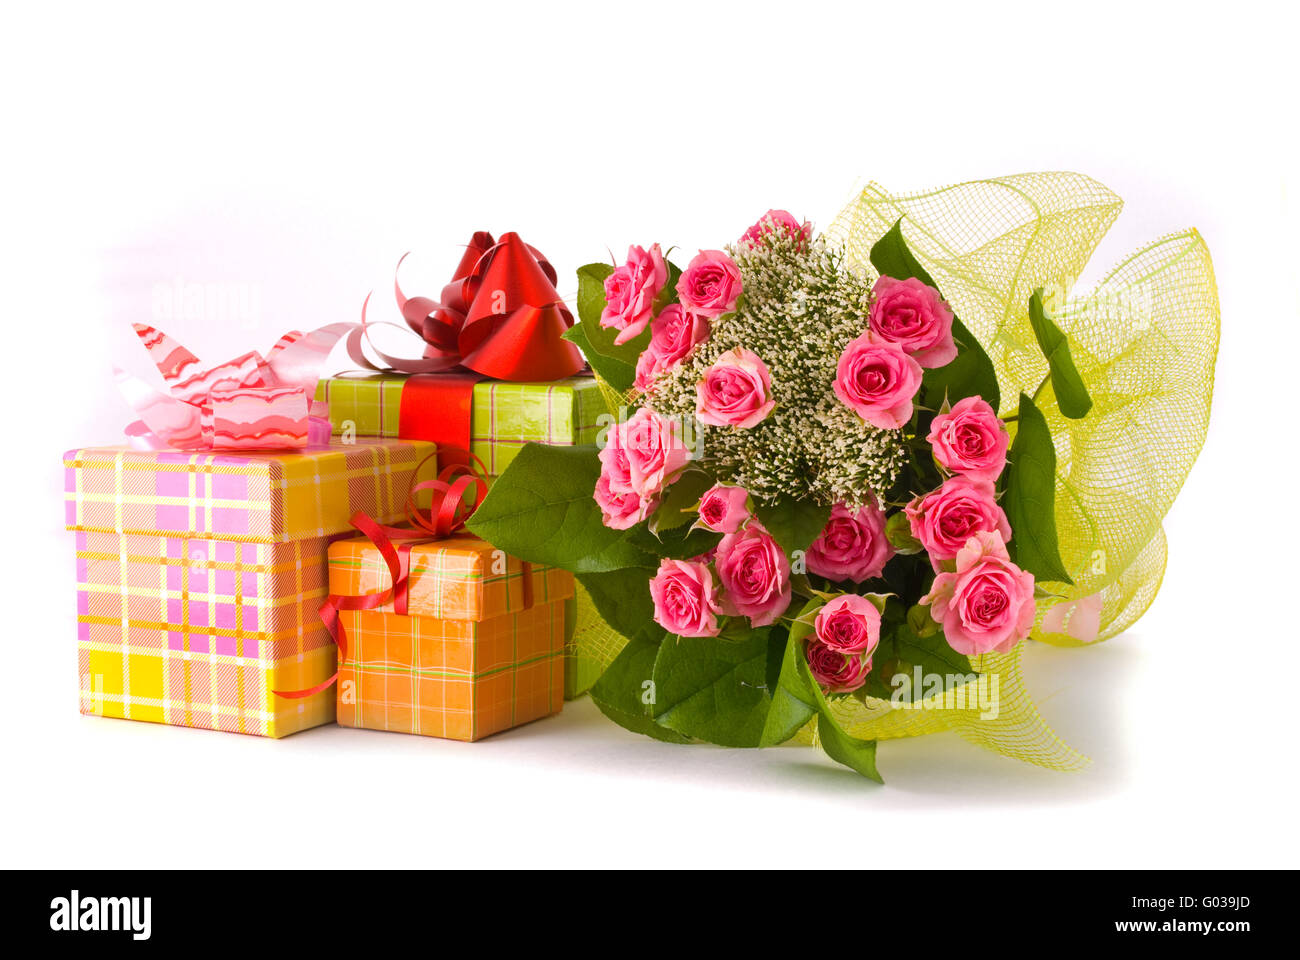 Beautiful roses bouquet and present boxes on white background stock beautiful roses bouquet and present boxes on white background izmirmasajfo